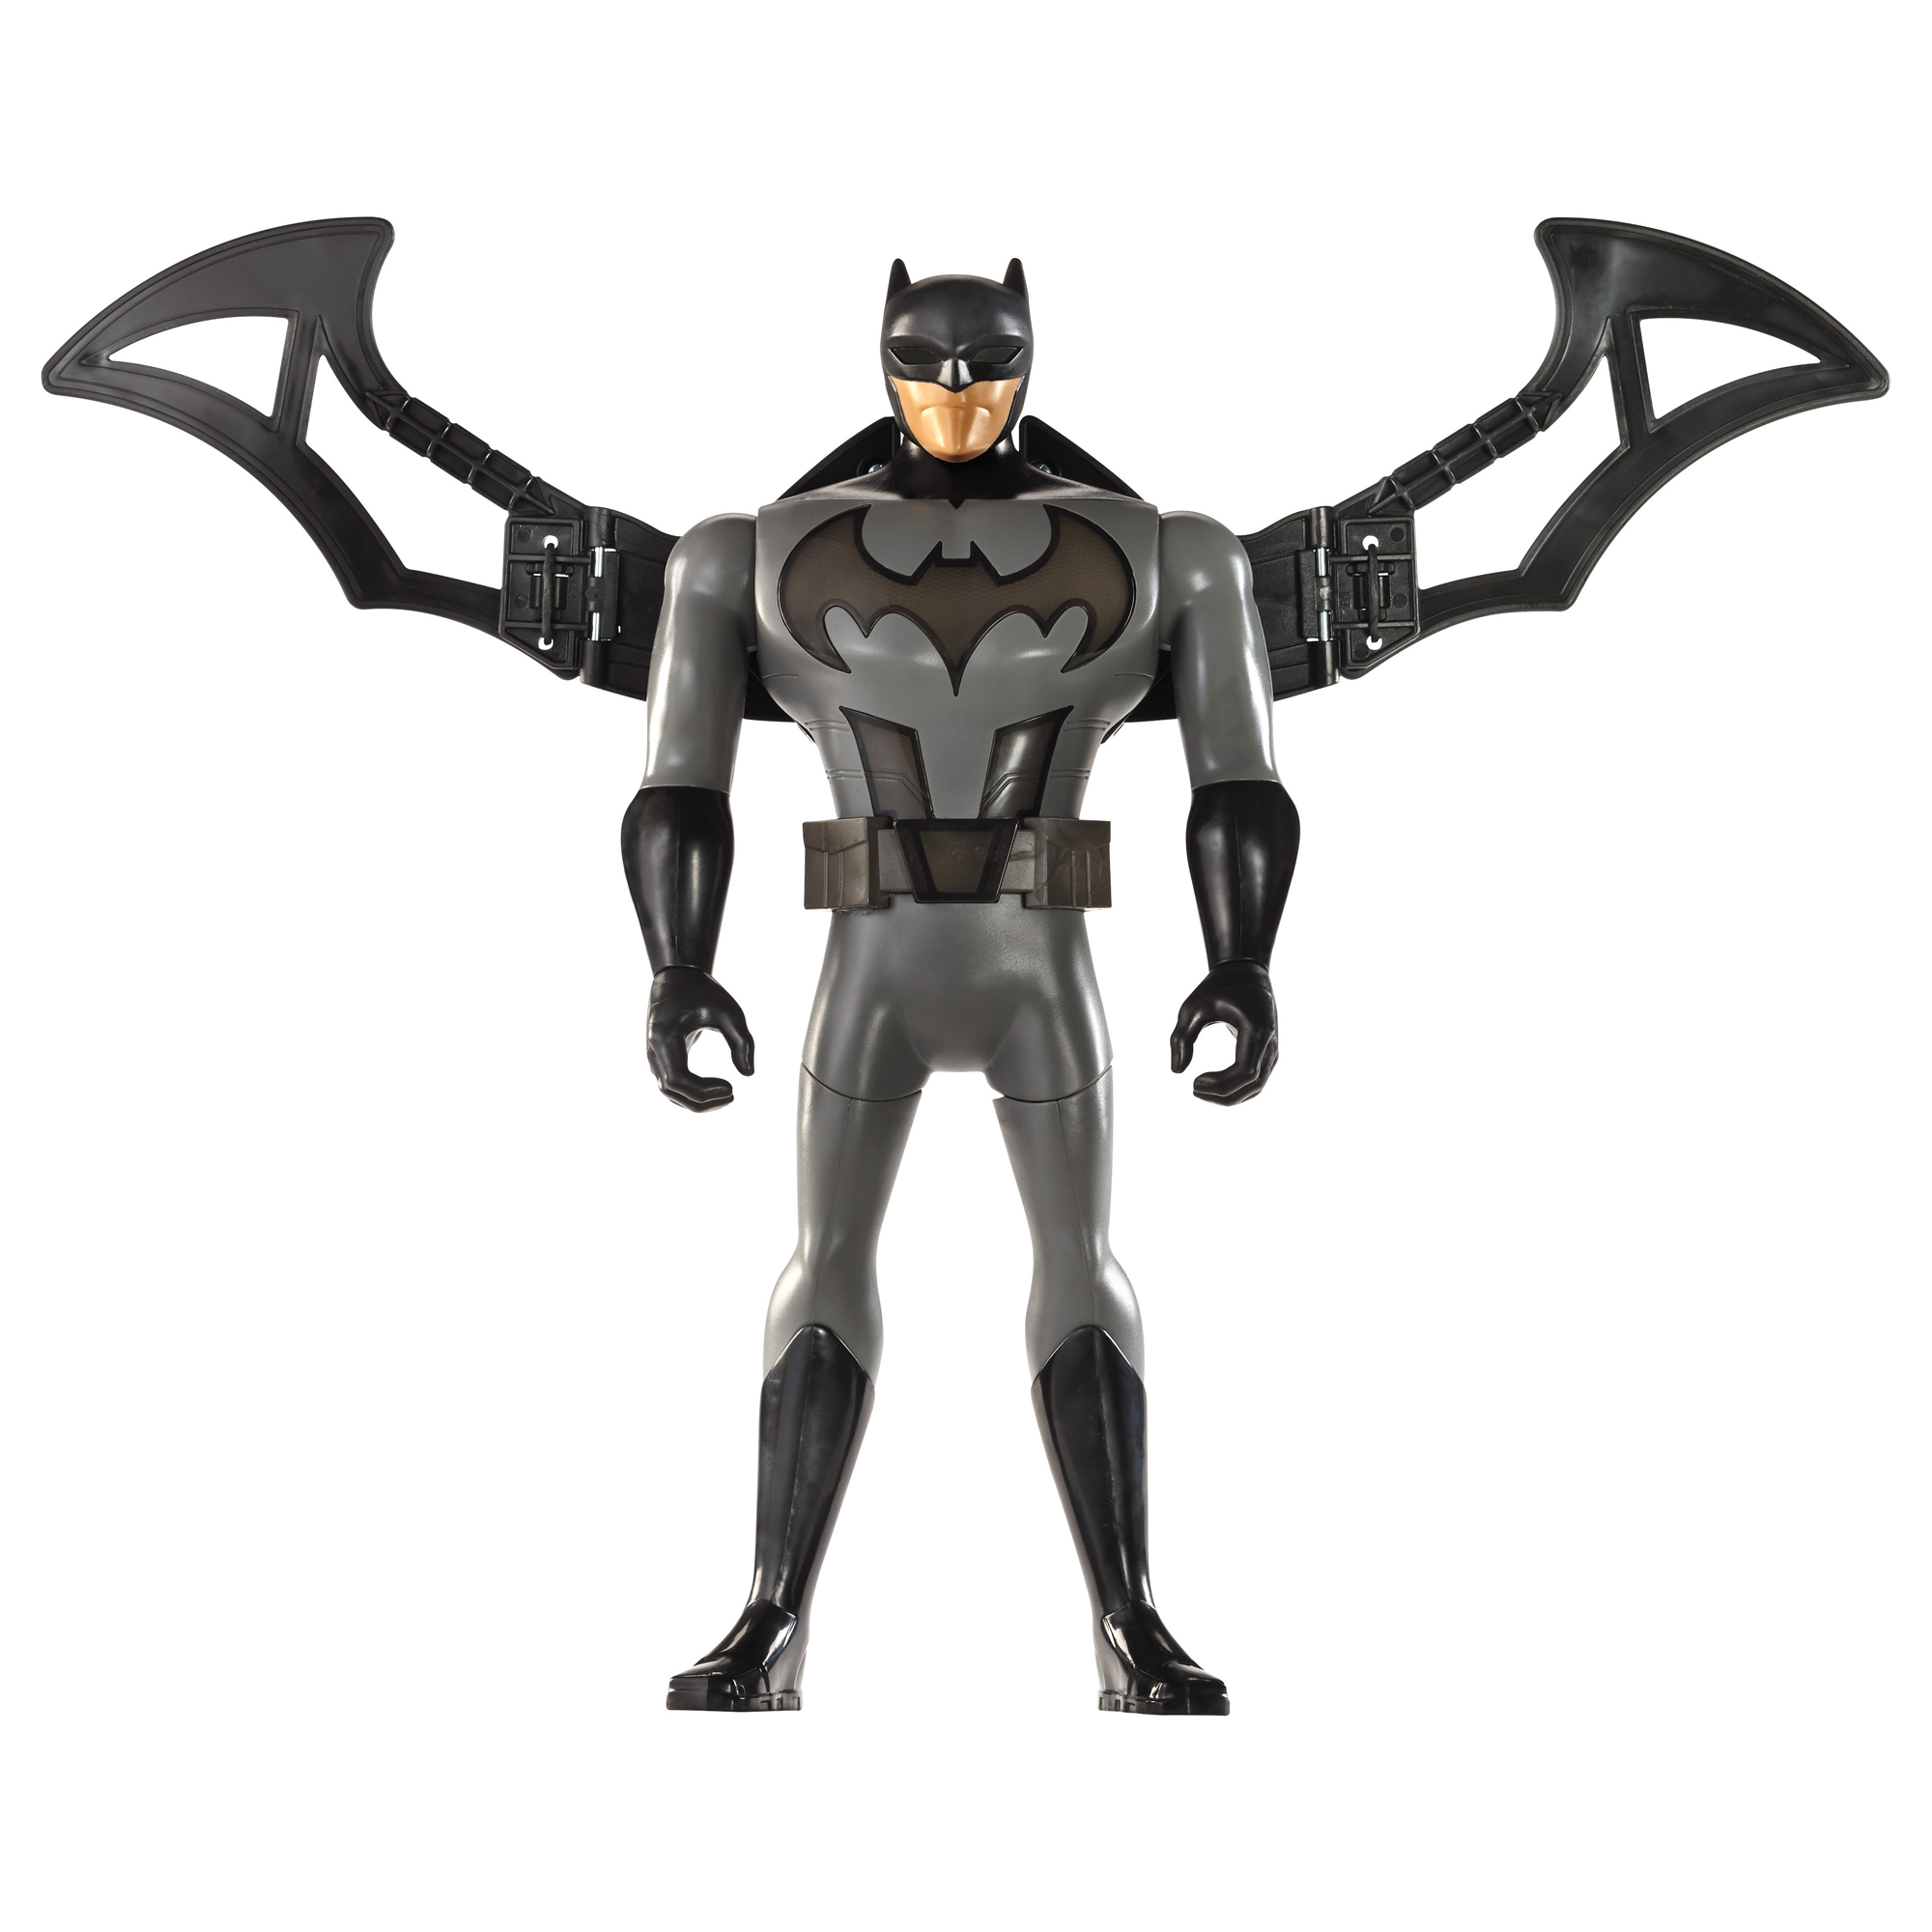 DC Justice League Action Battle Wing Batman Figure